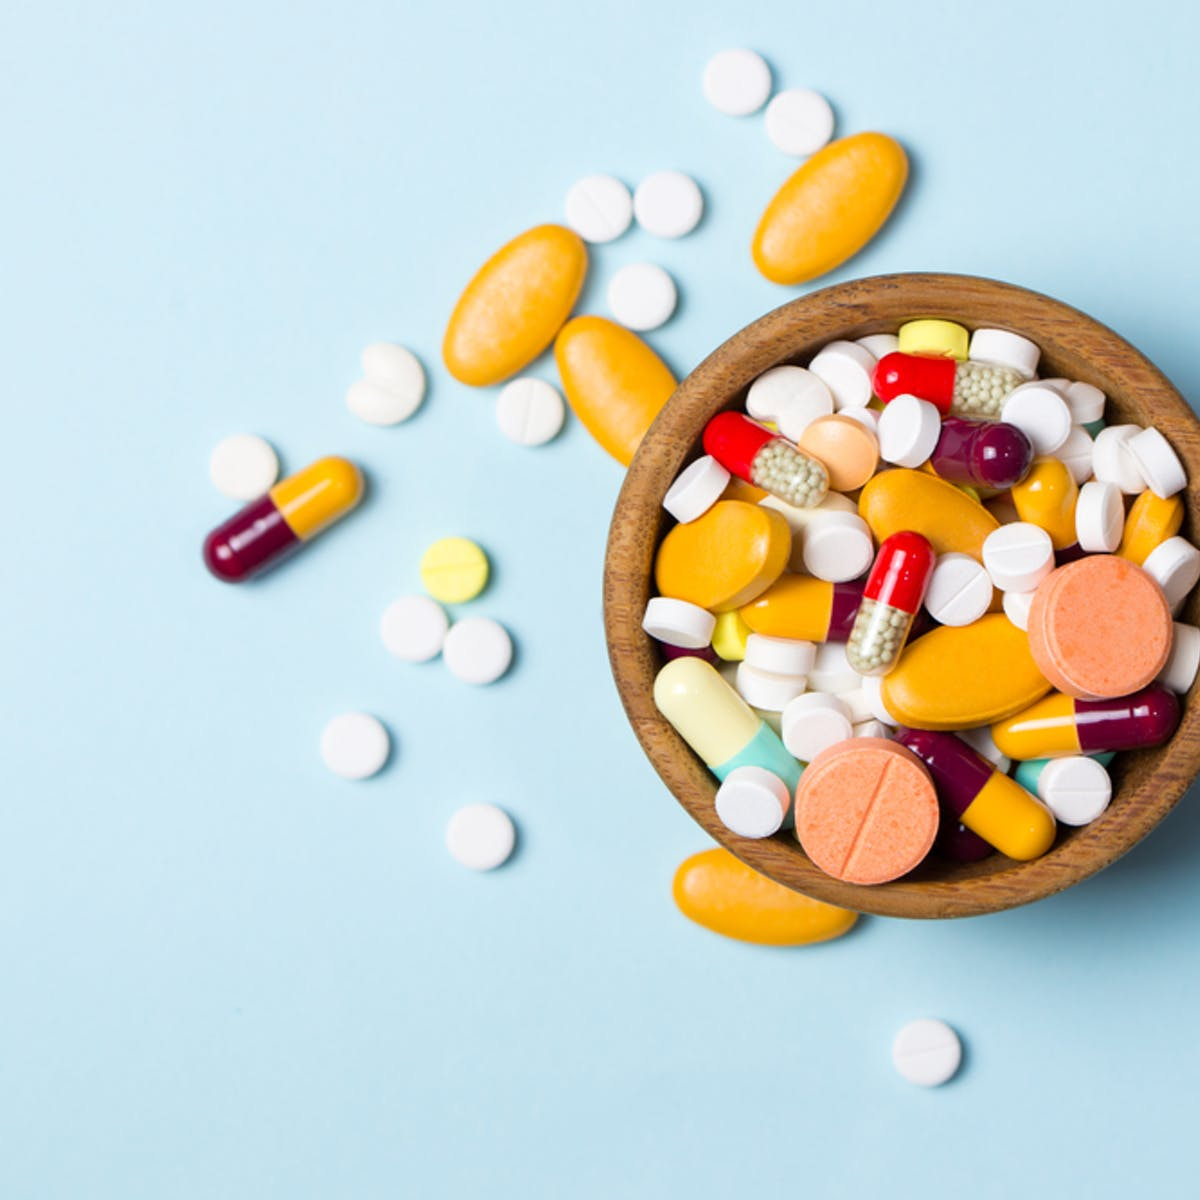 What is medicine? Why it's so important to answer this question